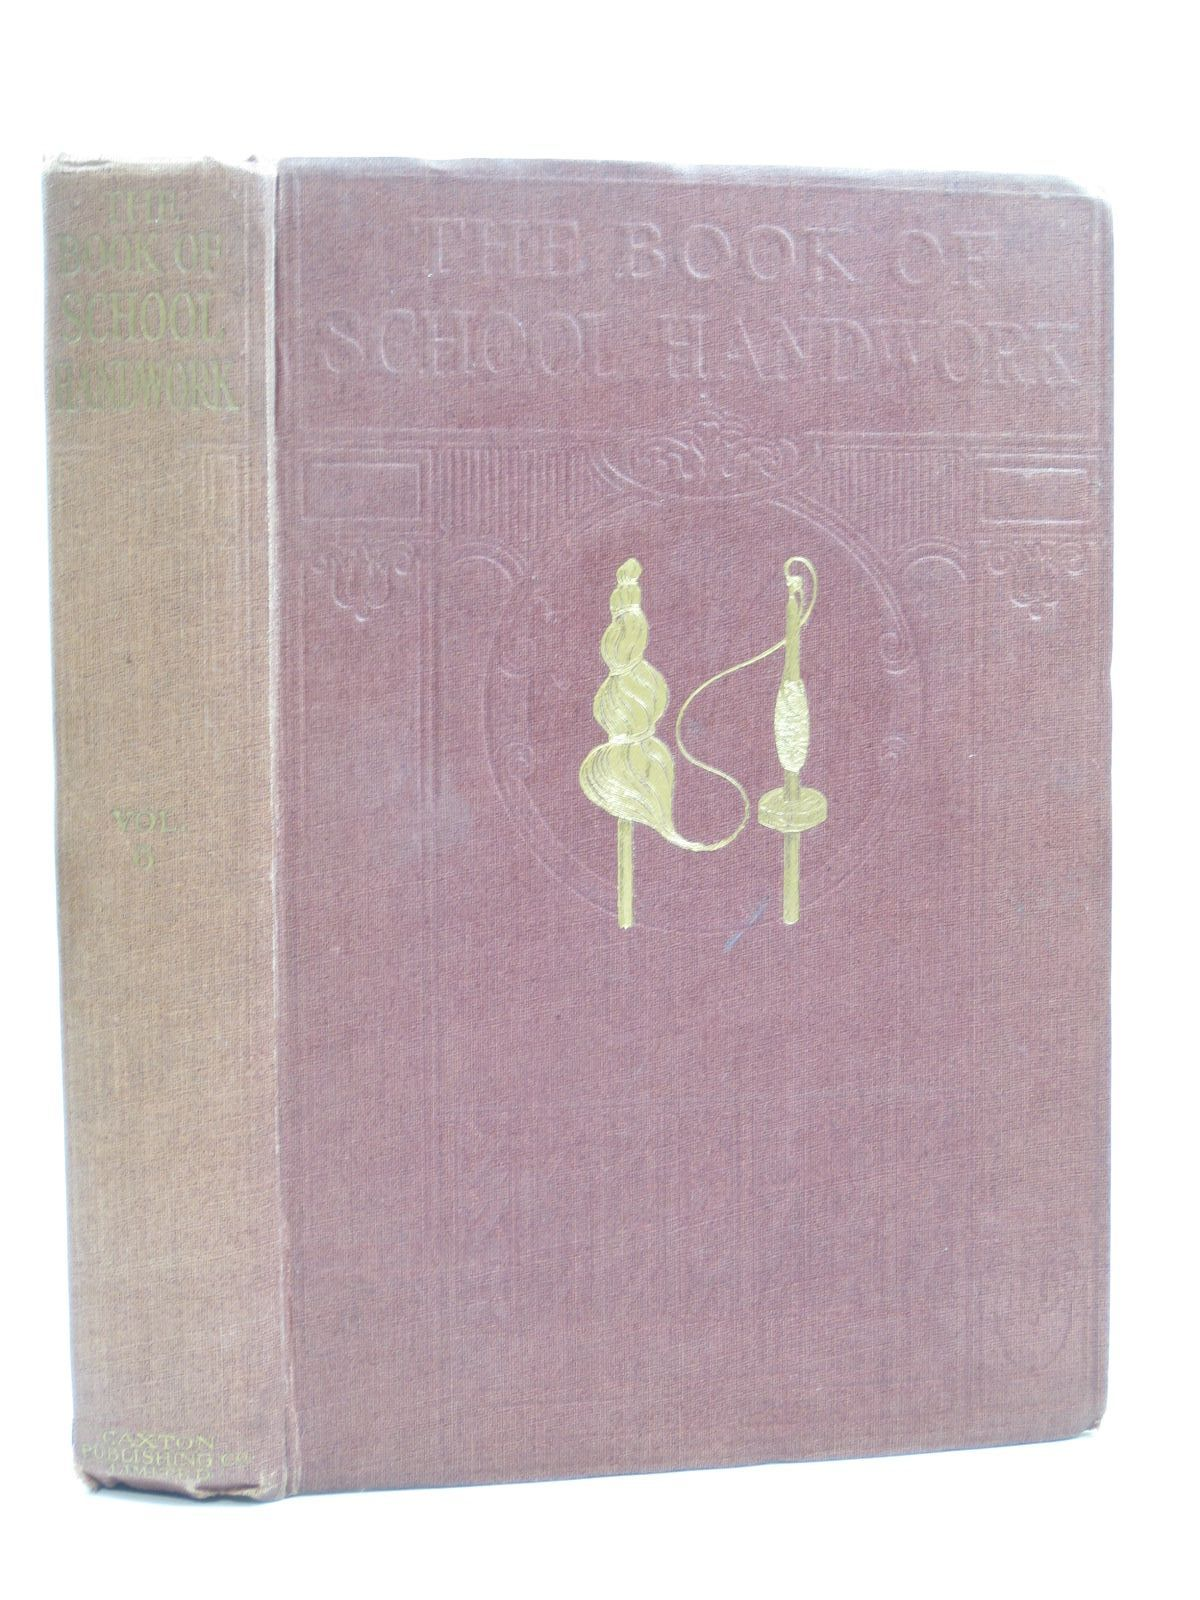 Photo of THE BOOK OF SCHOOL HANDWORK VOLUME VI written by Holman, H. published by Caxton Publishing Company Limited (STOCK CODE: 1403821)  for sale by Stella & Rose's Books